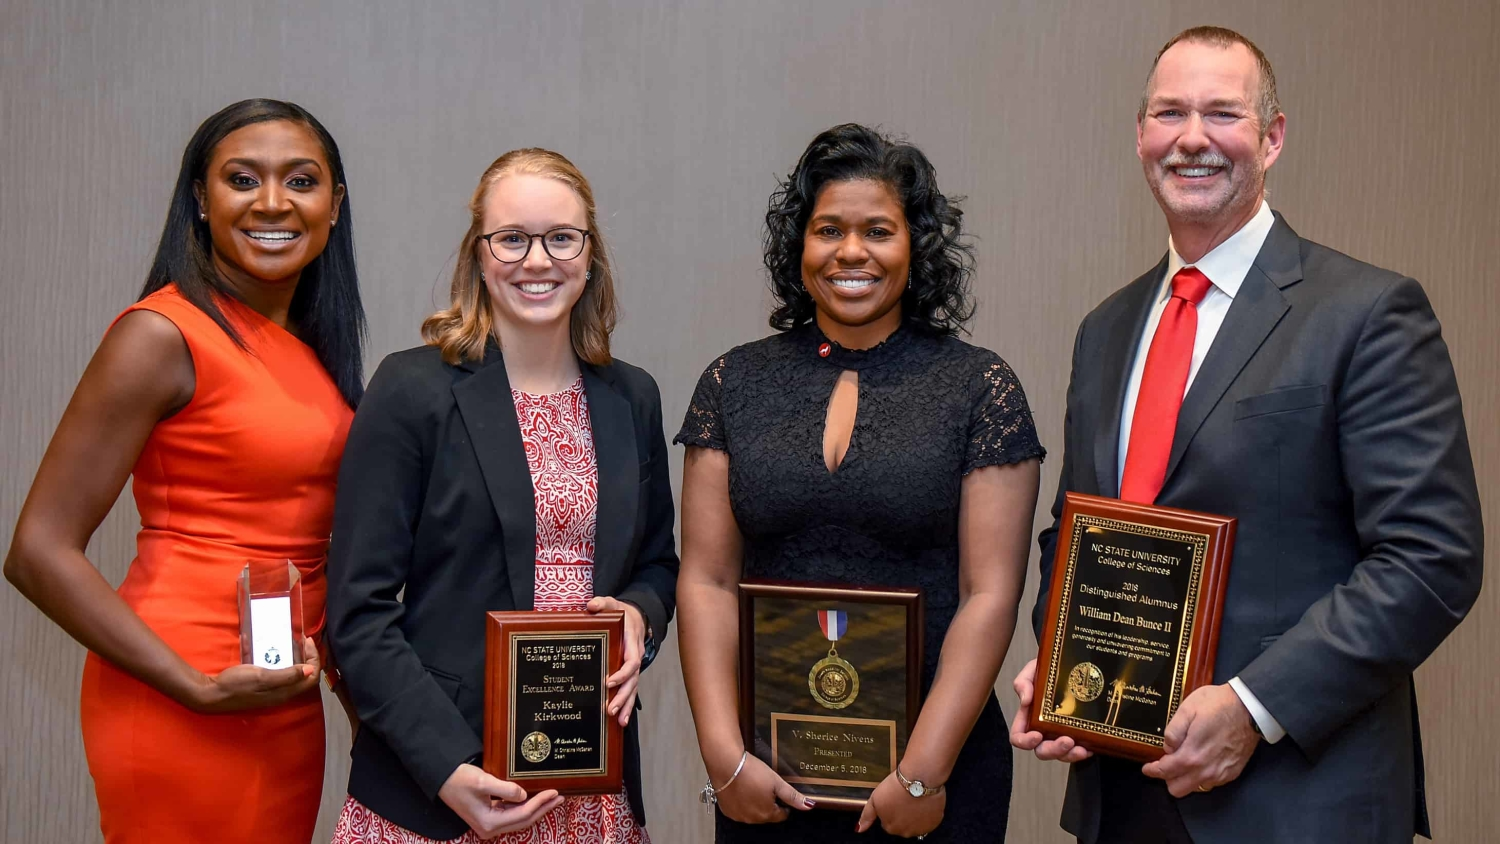 College of Sciences Award Winners pose with their awards.